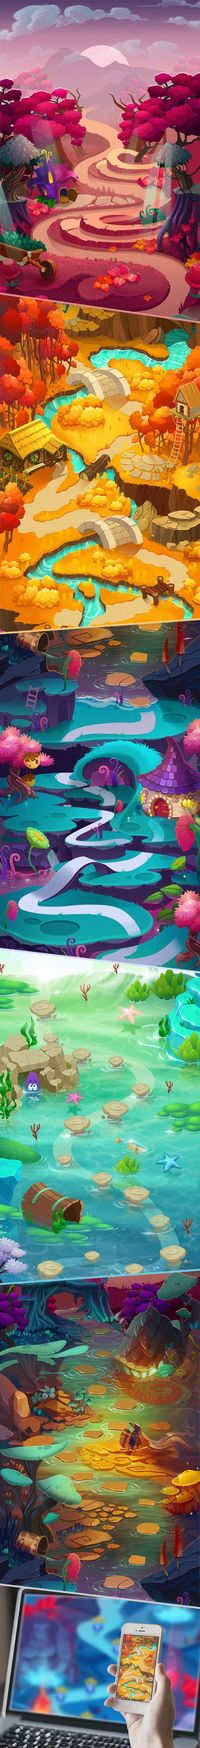 Maps for Match 3 game on Behance